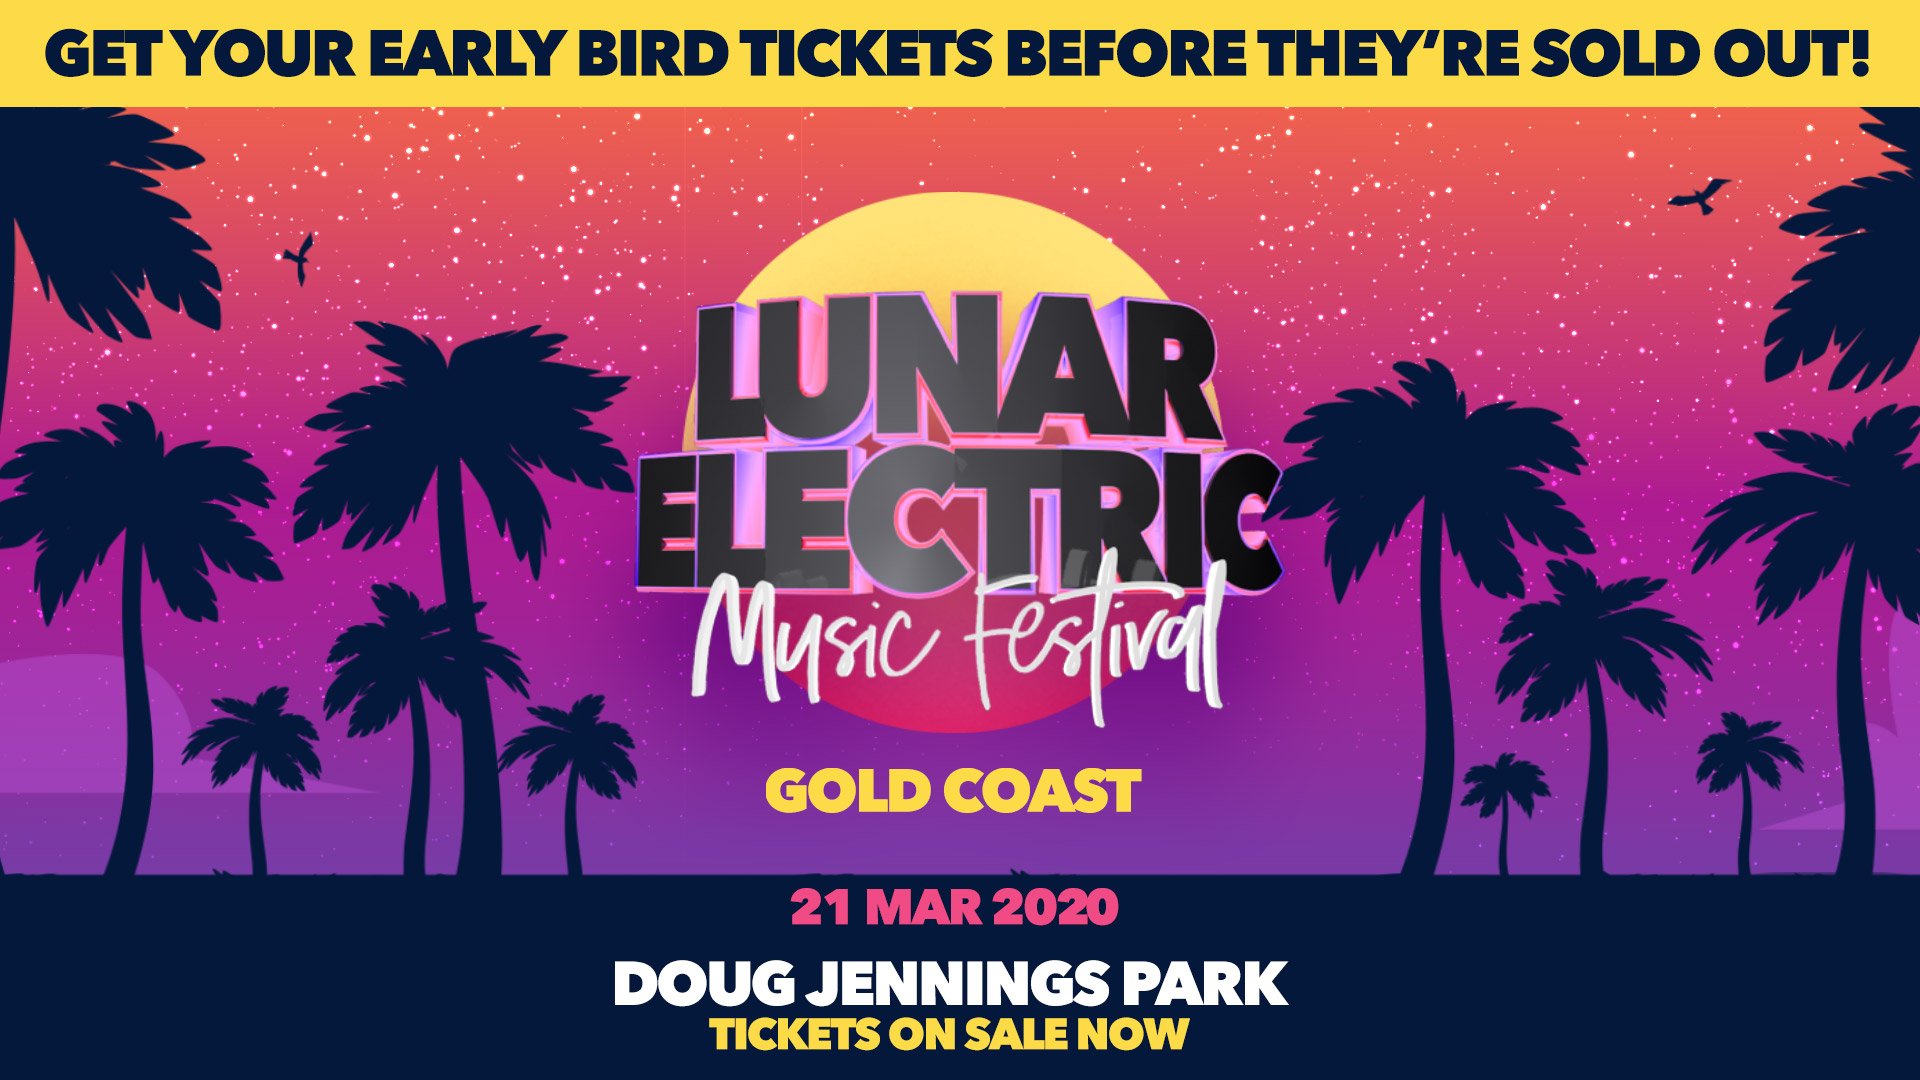 Tickets for Lunar Electric Music Festival Gold Coast 2020 in Main Beach from Ticketbooth